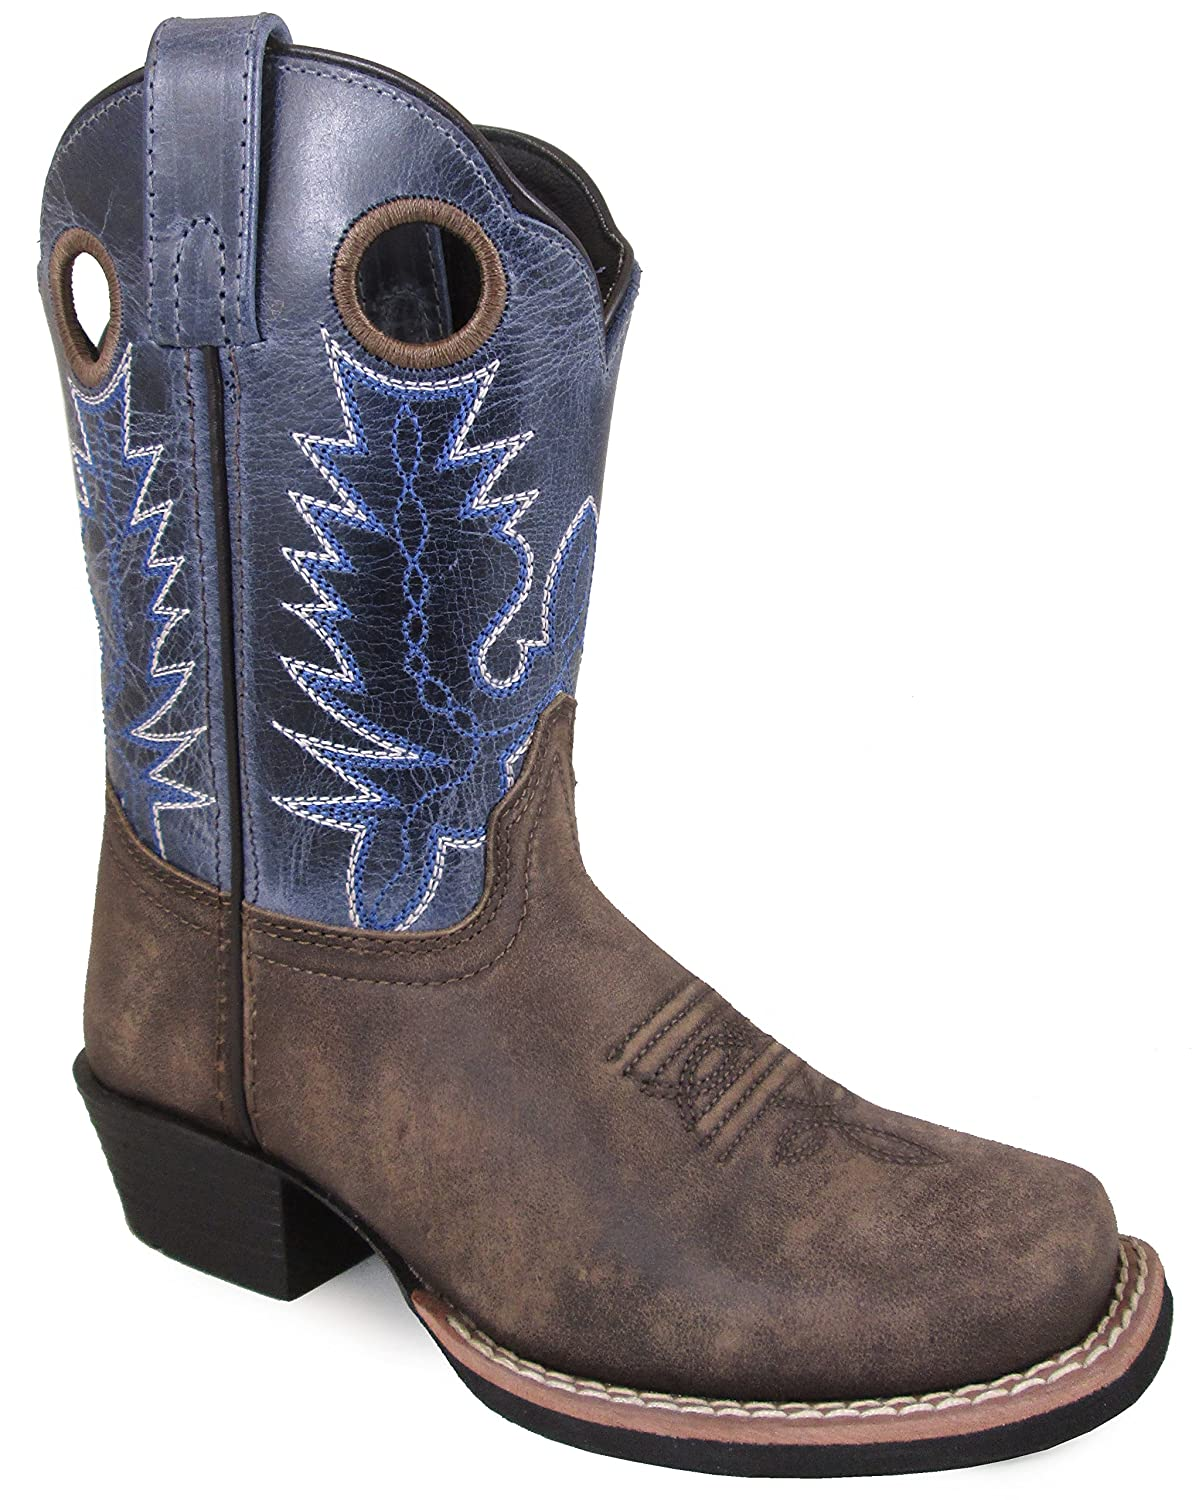 Smoky Mountain Children's Mesa Square Toe Pull On Brown Oil Distressed/Navy Crackle Boots 9M